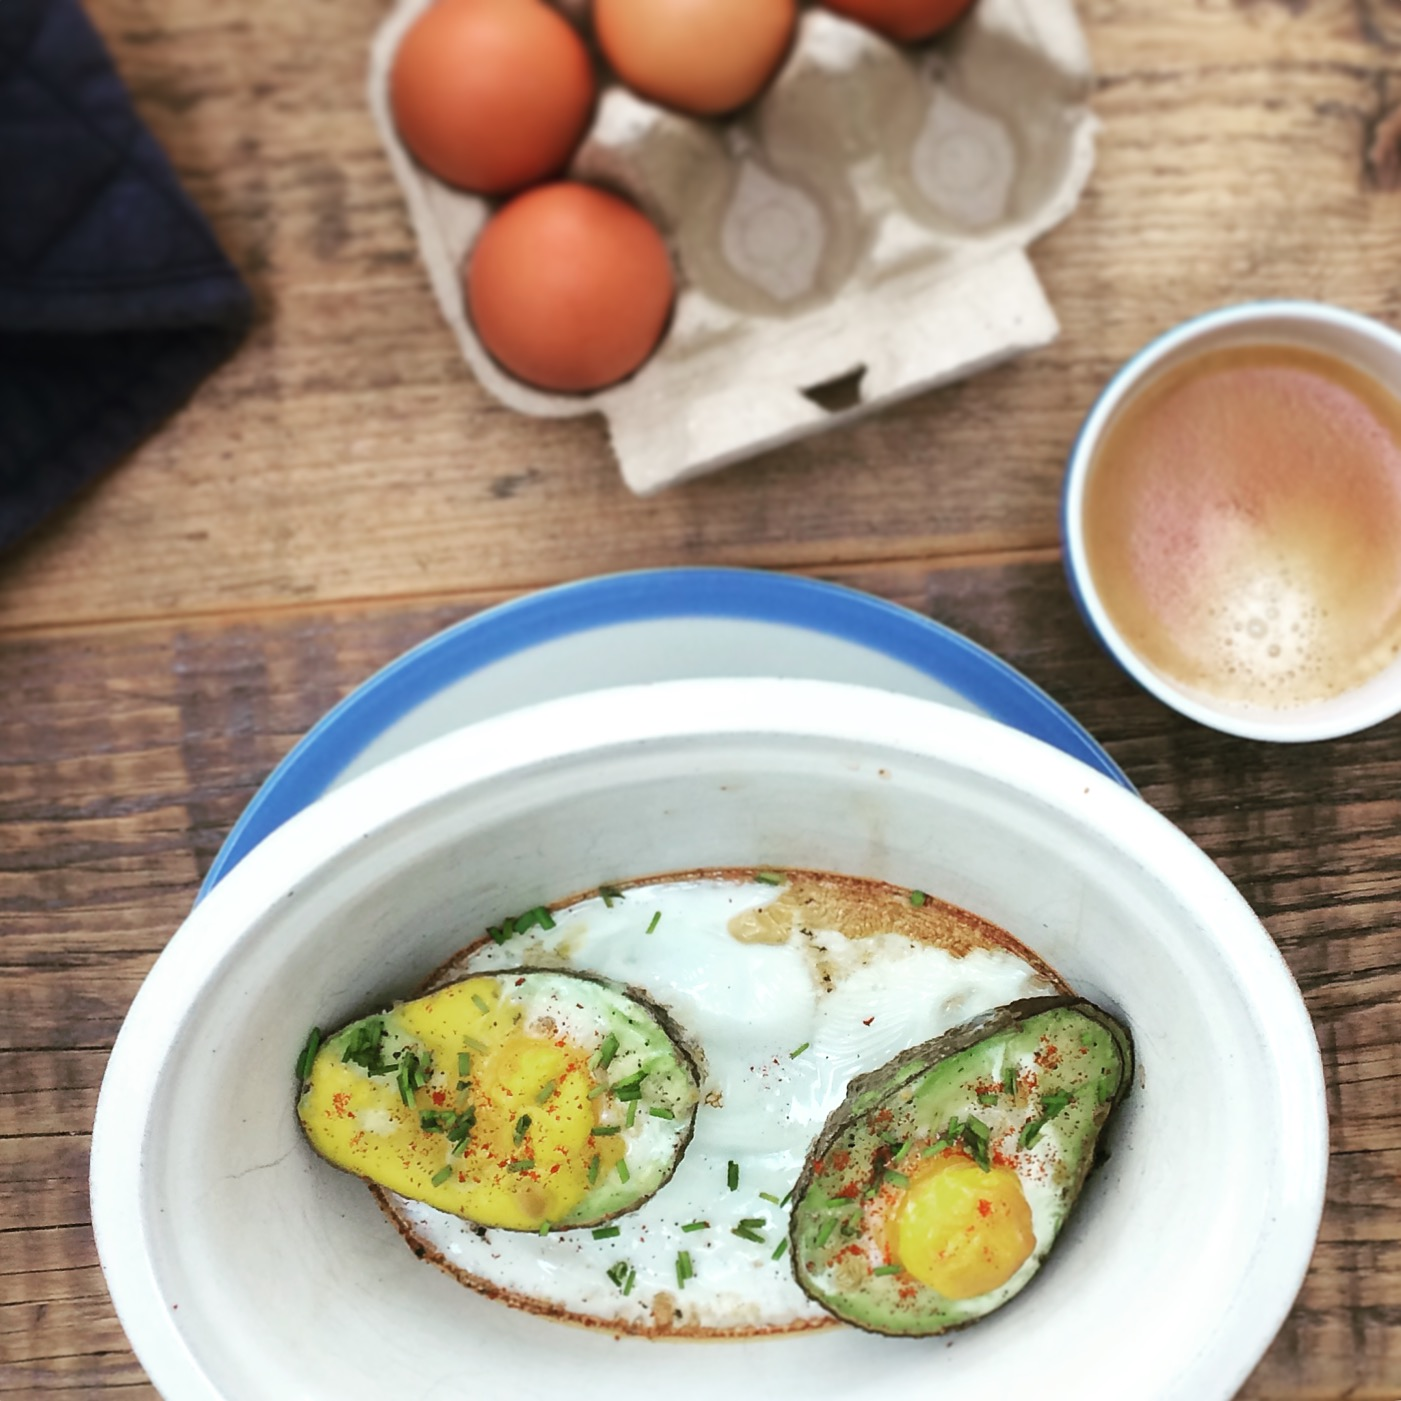 paprika baked egg and avocado